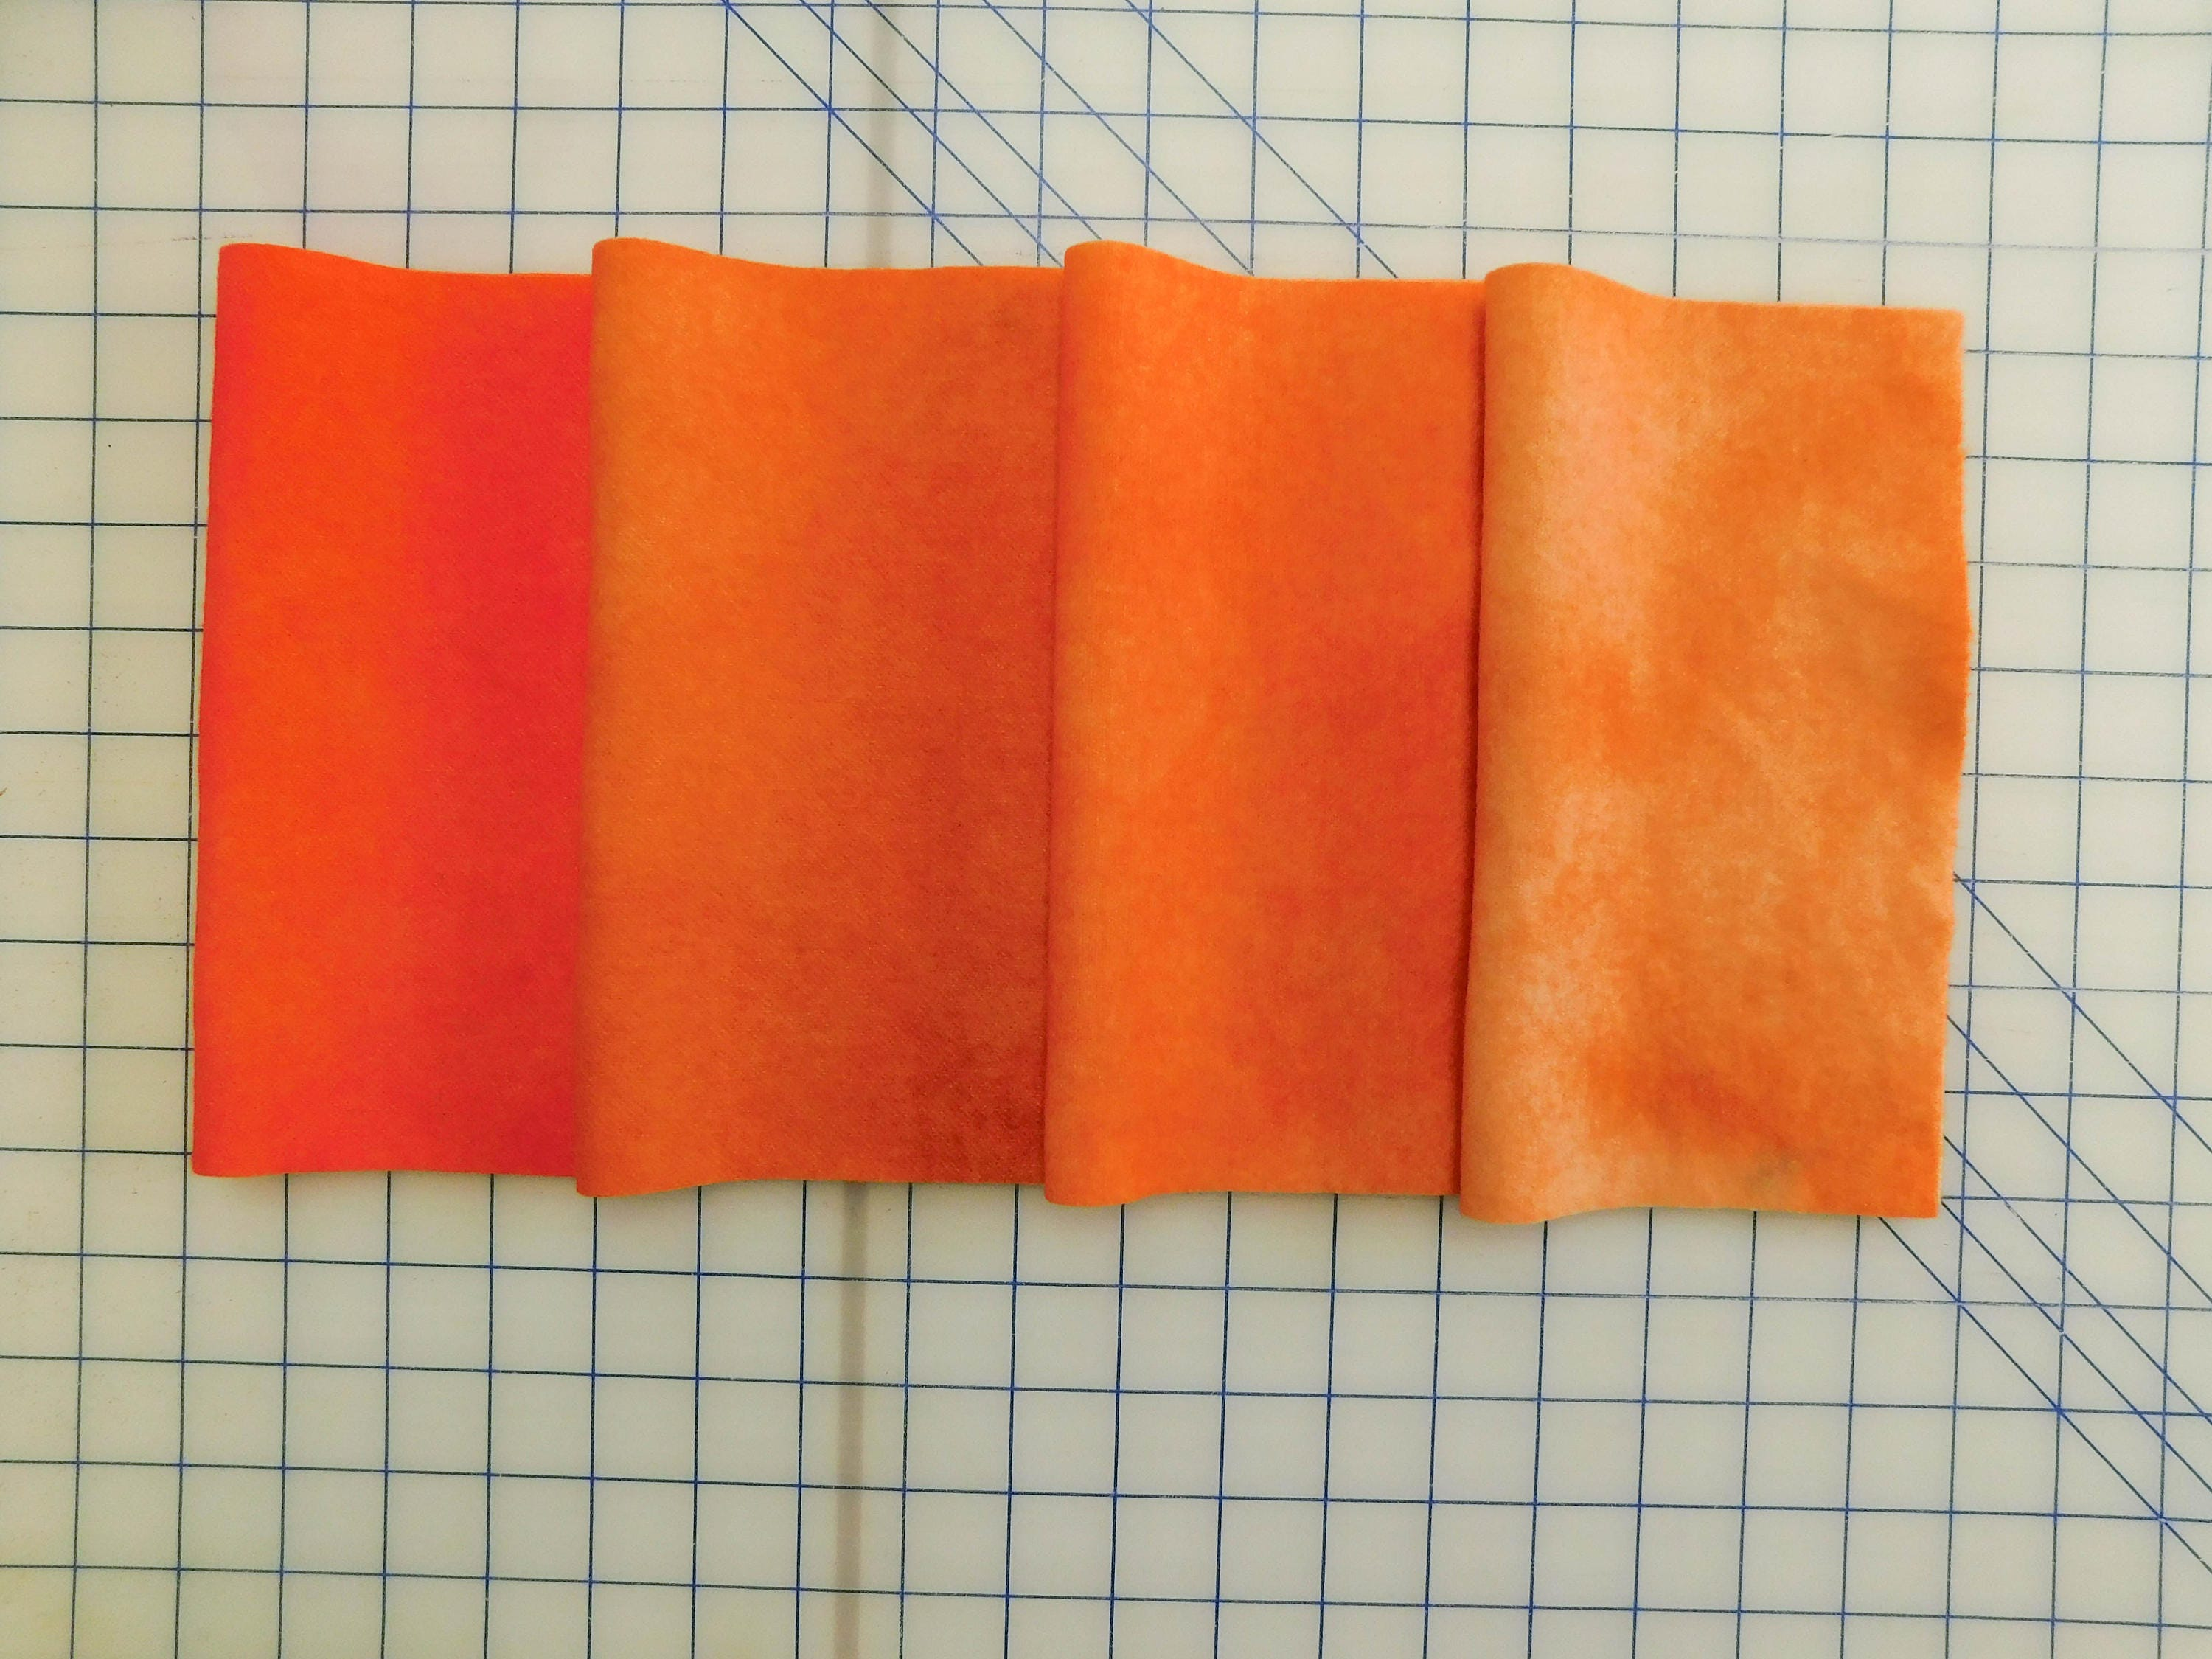 Four shades of mottled orange applique wool four shades of orange